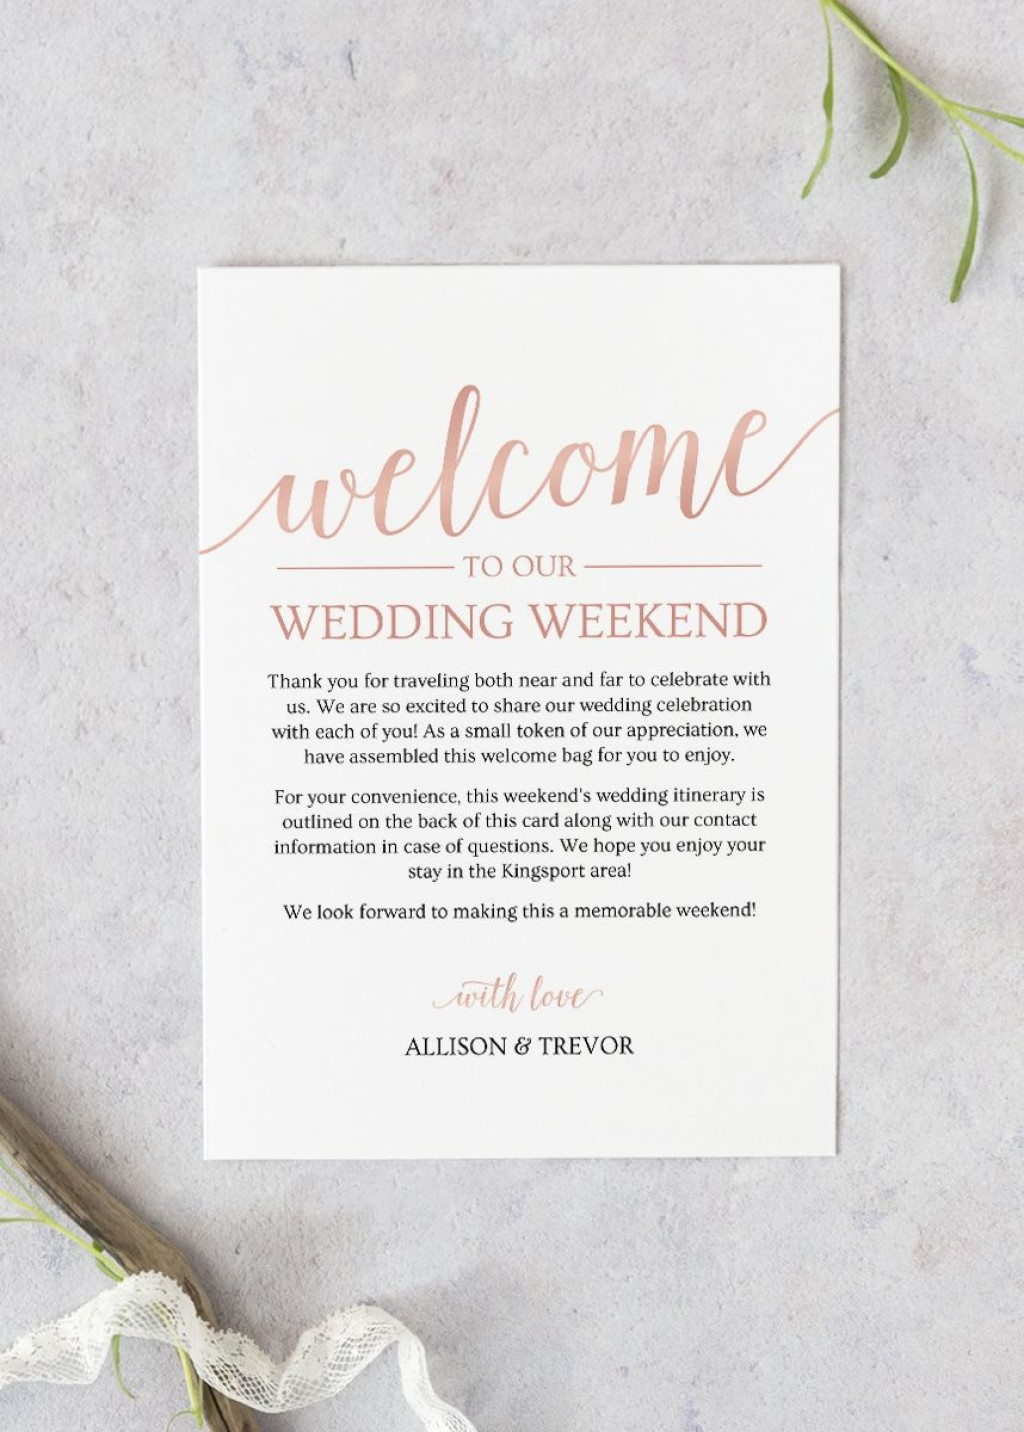 007 Unbelievable Destination Wedding Welcome Letter And Itinerary Template Sample Large